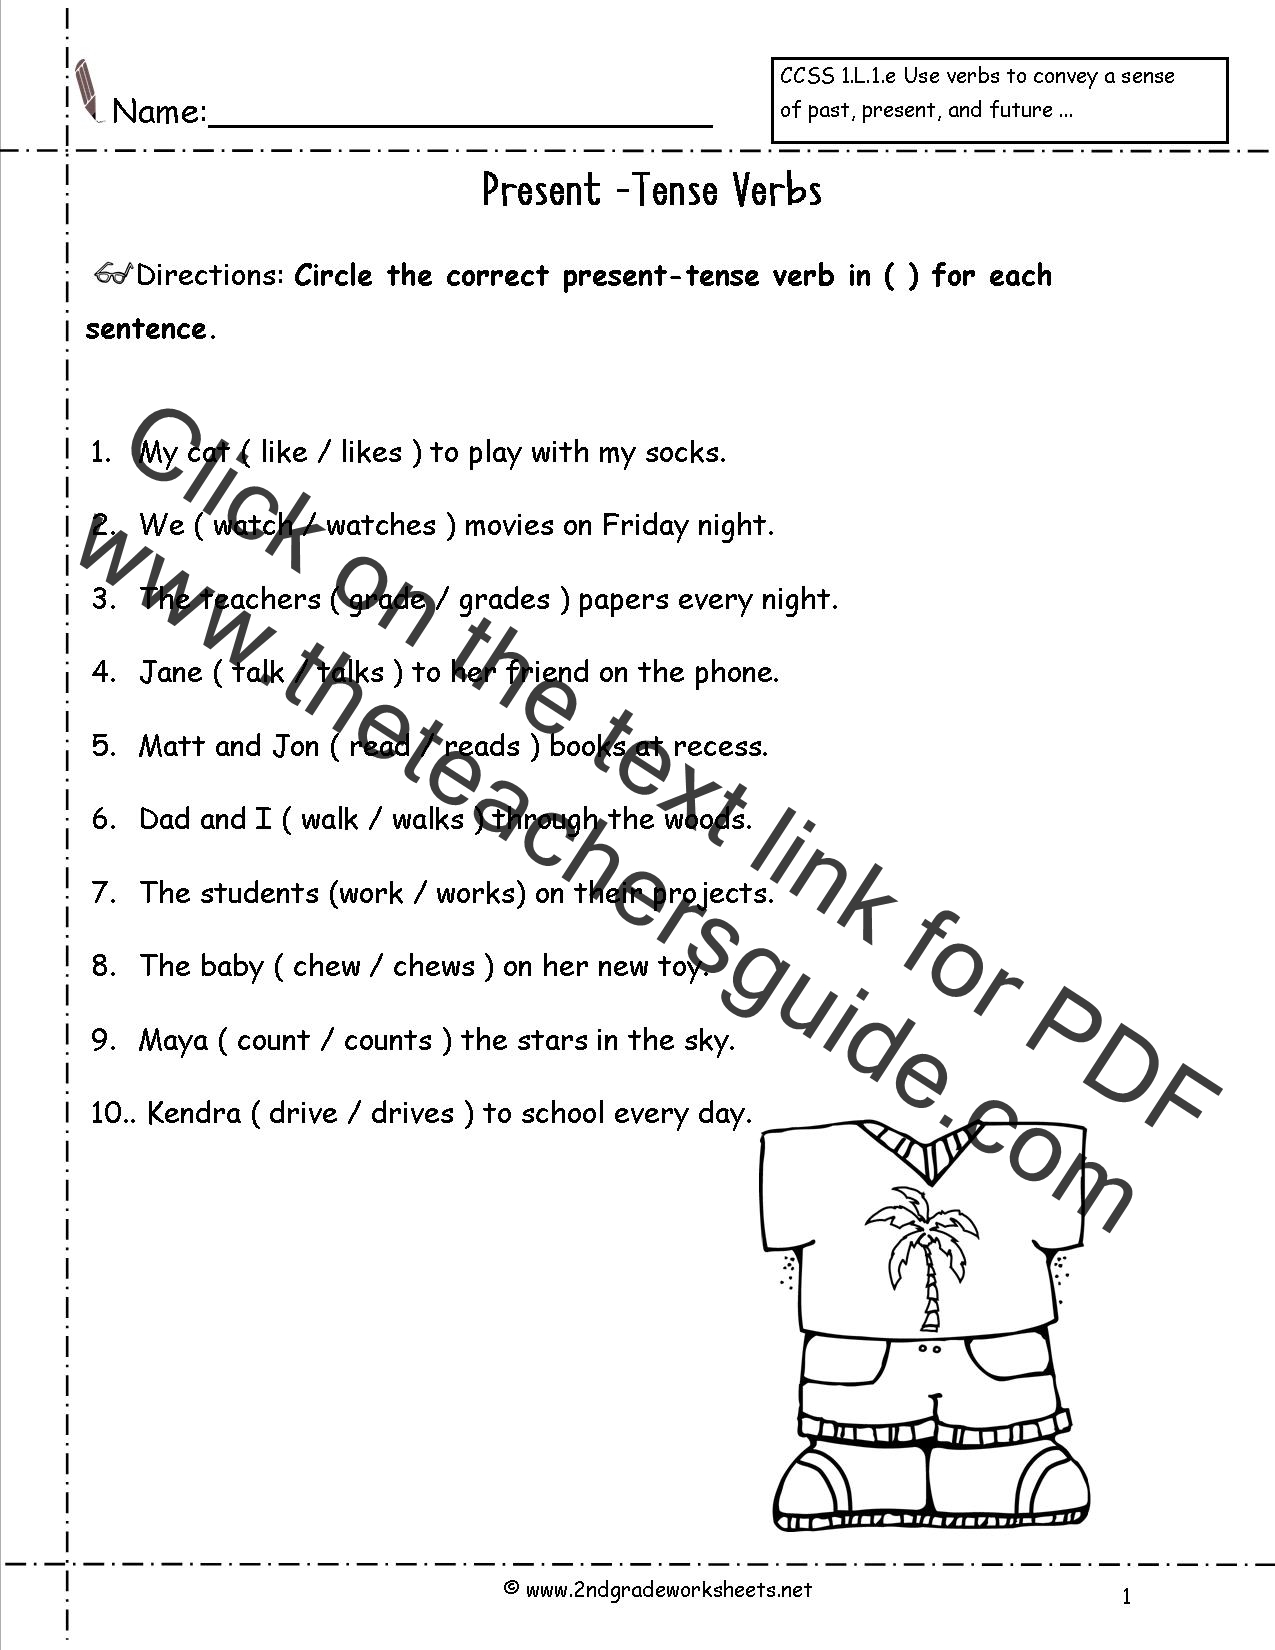 Writing Past Tense Verbs Worksheet